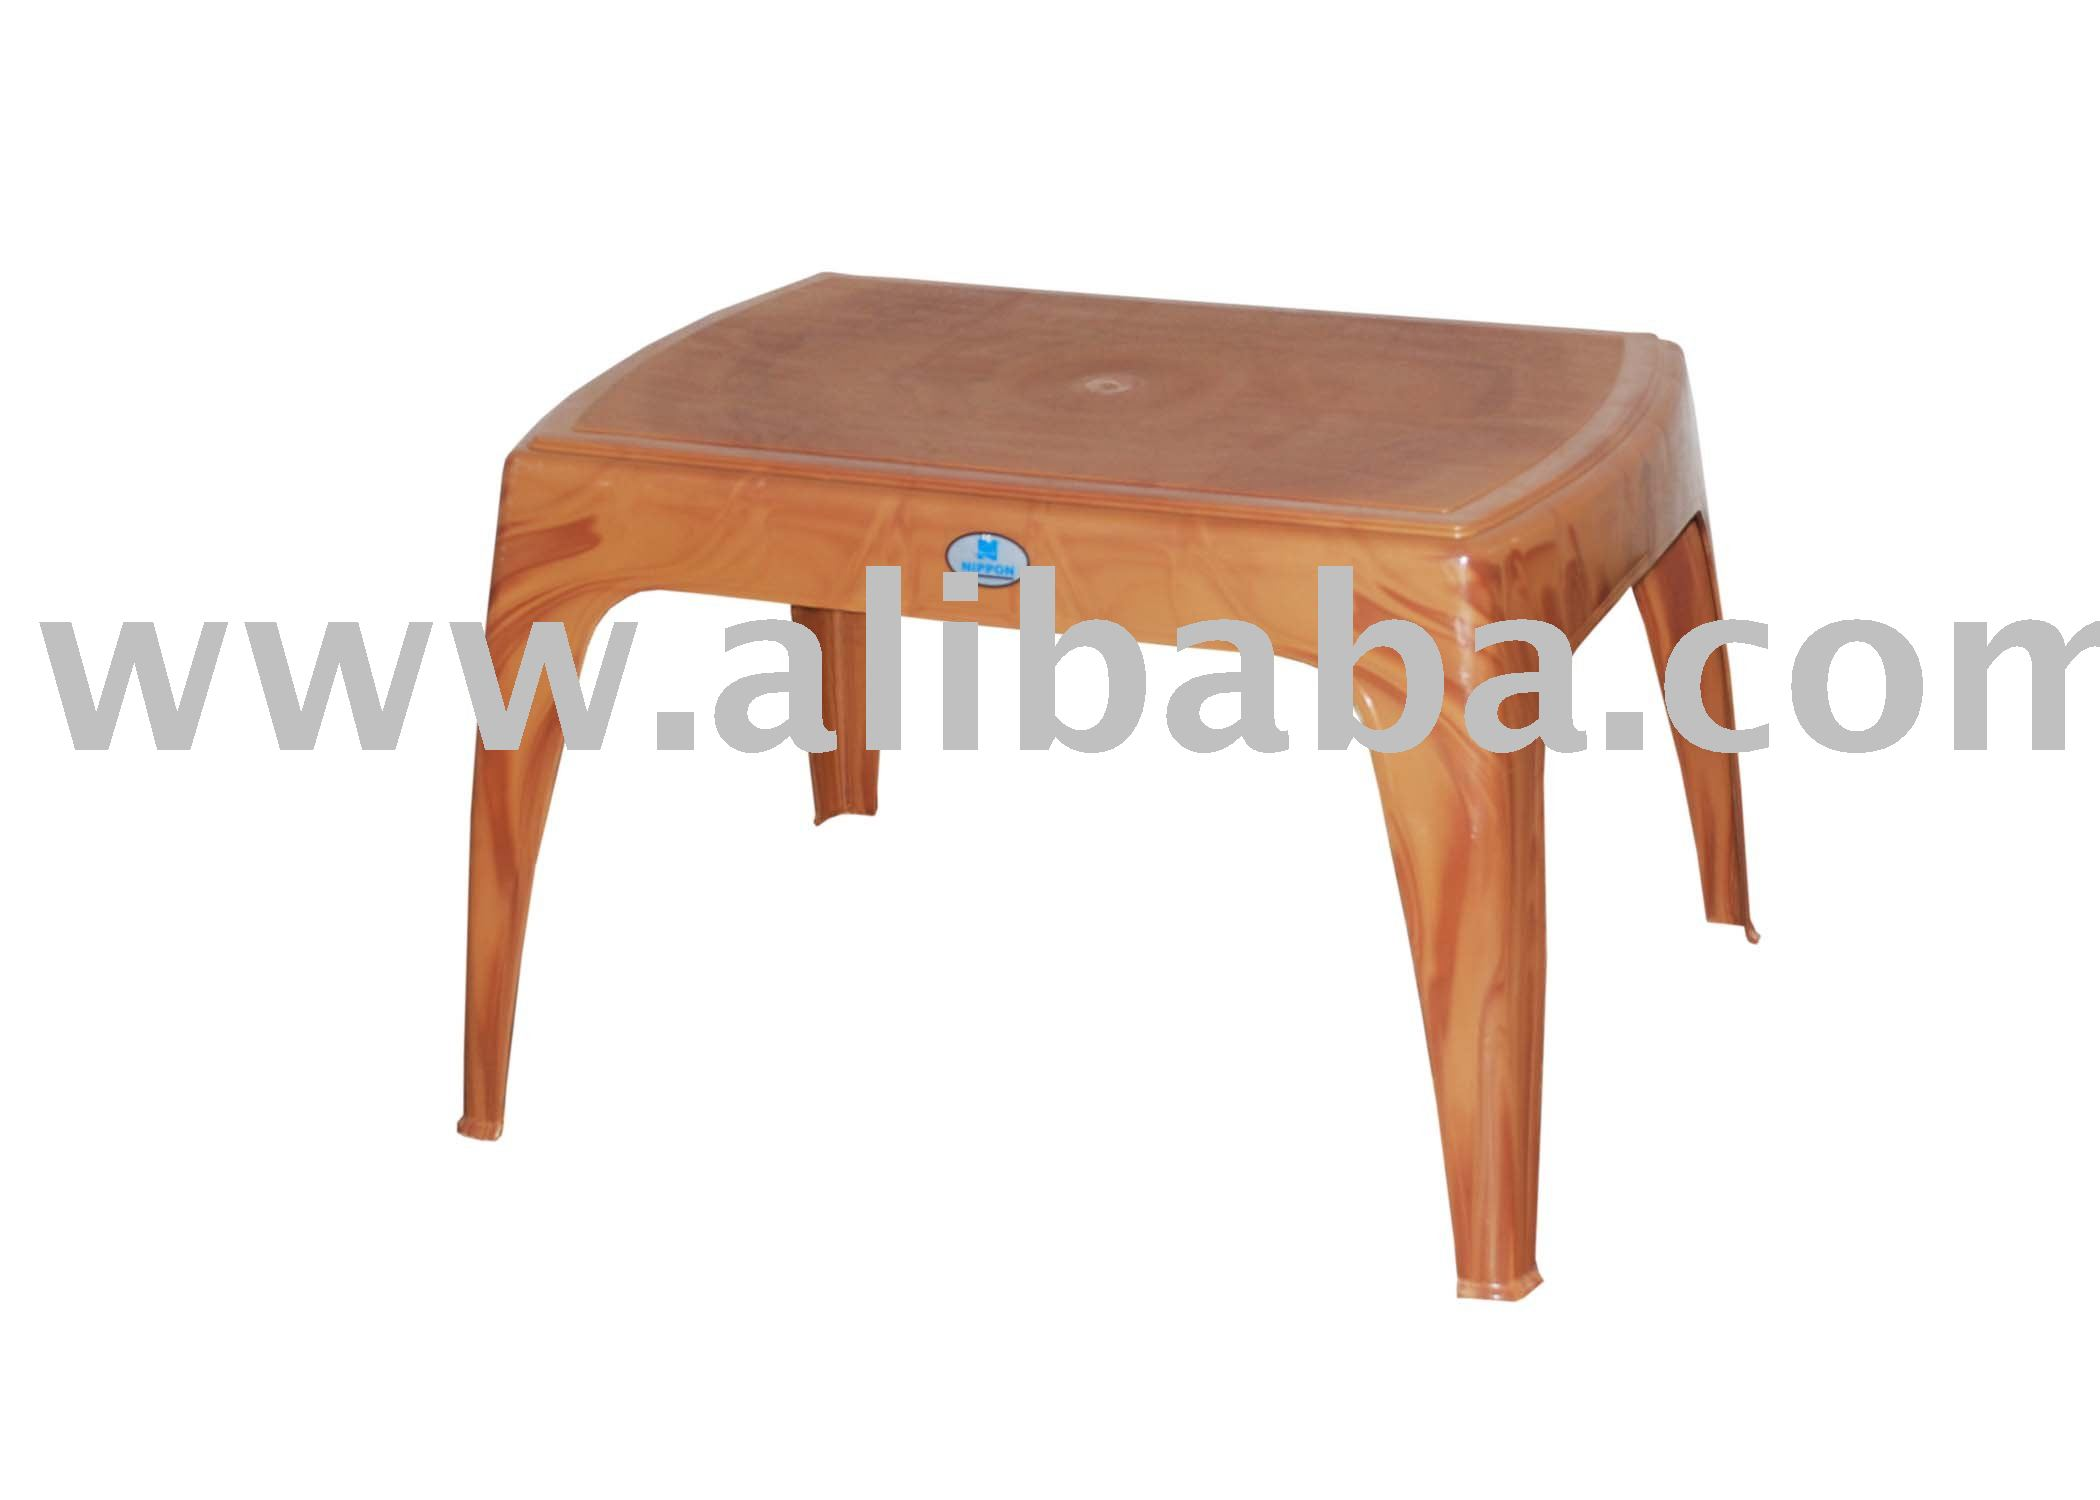 Admirable Plastic Coffee Table Buy Modern Plastic Chairs Product On Alibaba Com Onthecornerstone Fun Painted Chair Ideas Images Onthecornerstoneorg